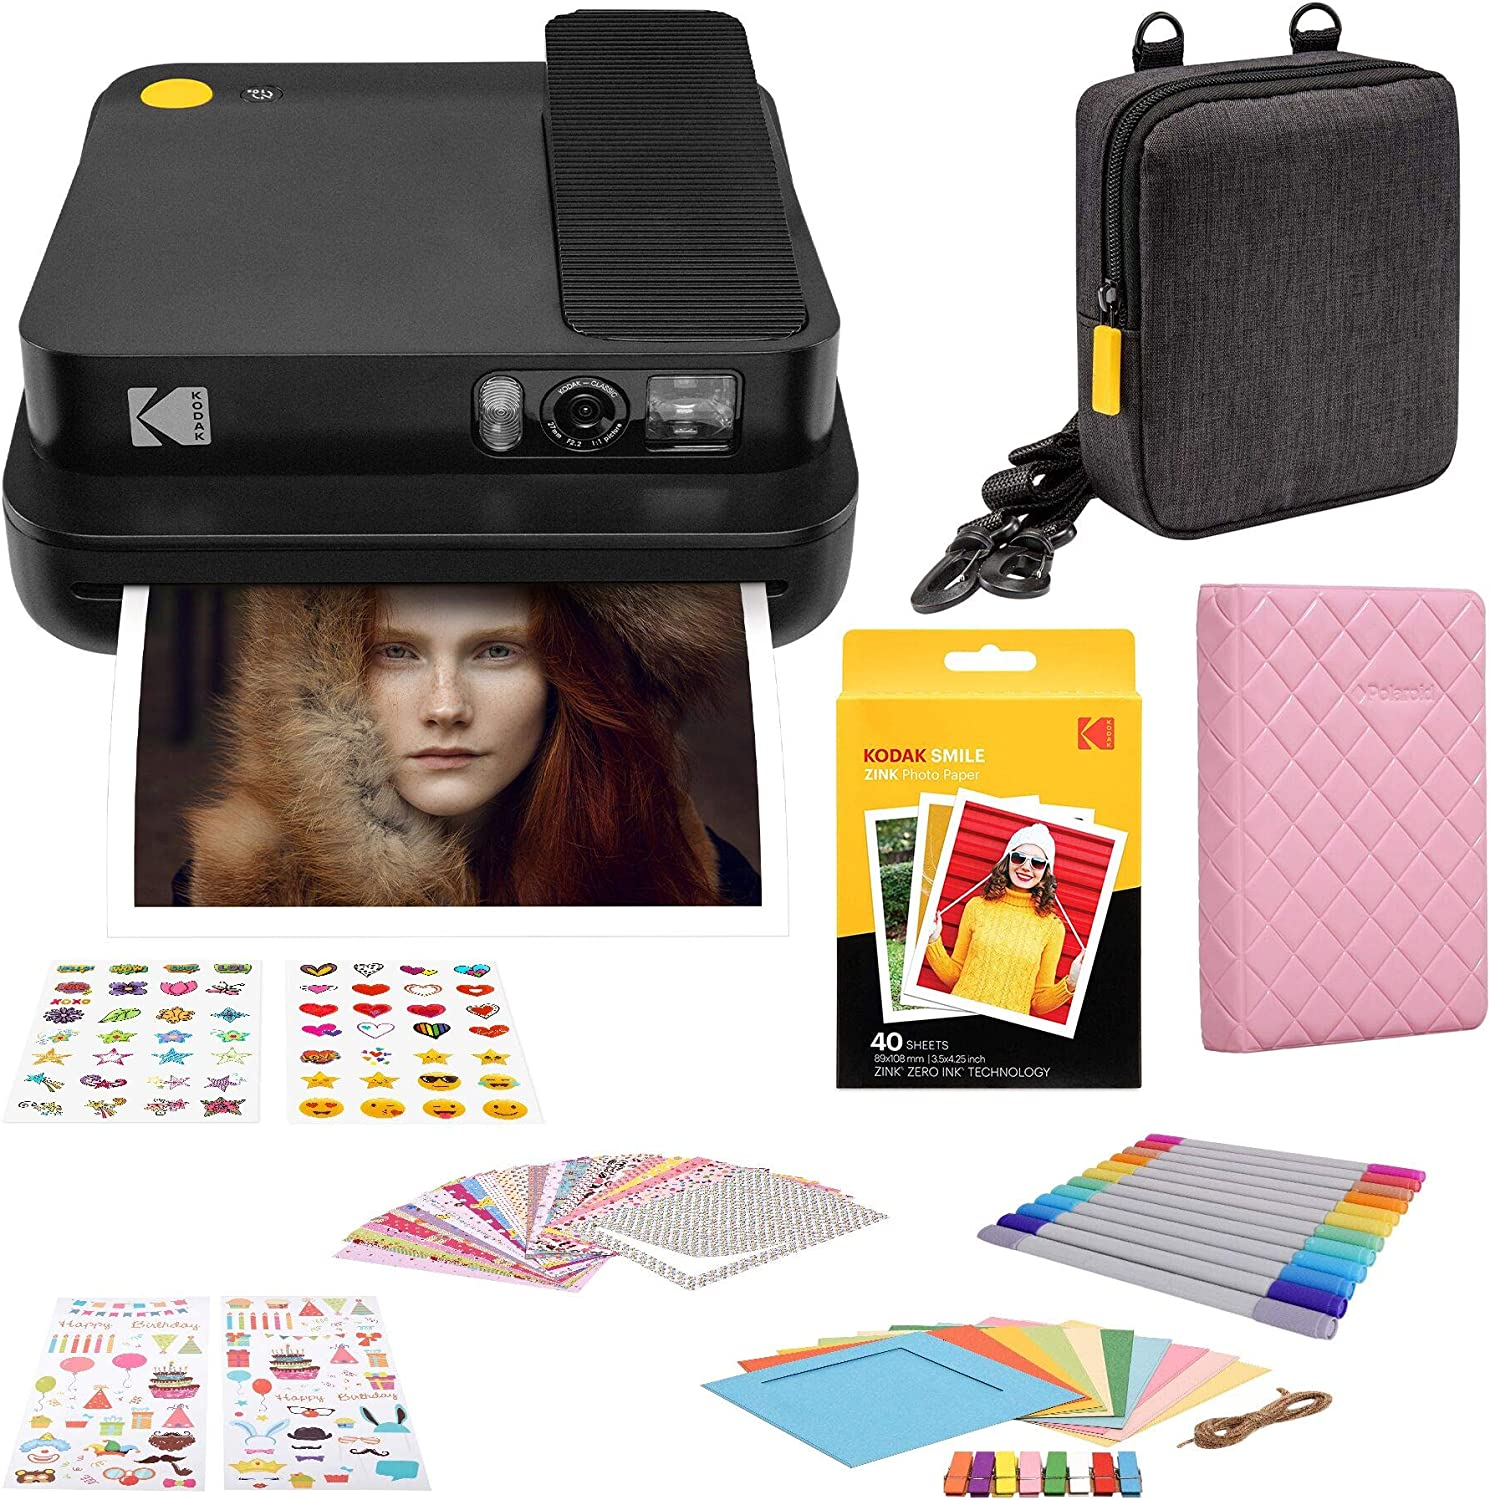 Kodak 3.5x4.25 inch Premium Zink Print Photo Paper Compatible with Kodak Smile Classic Instant Camera 40 Sheets